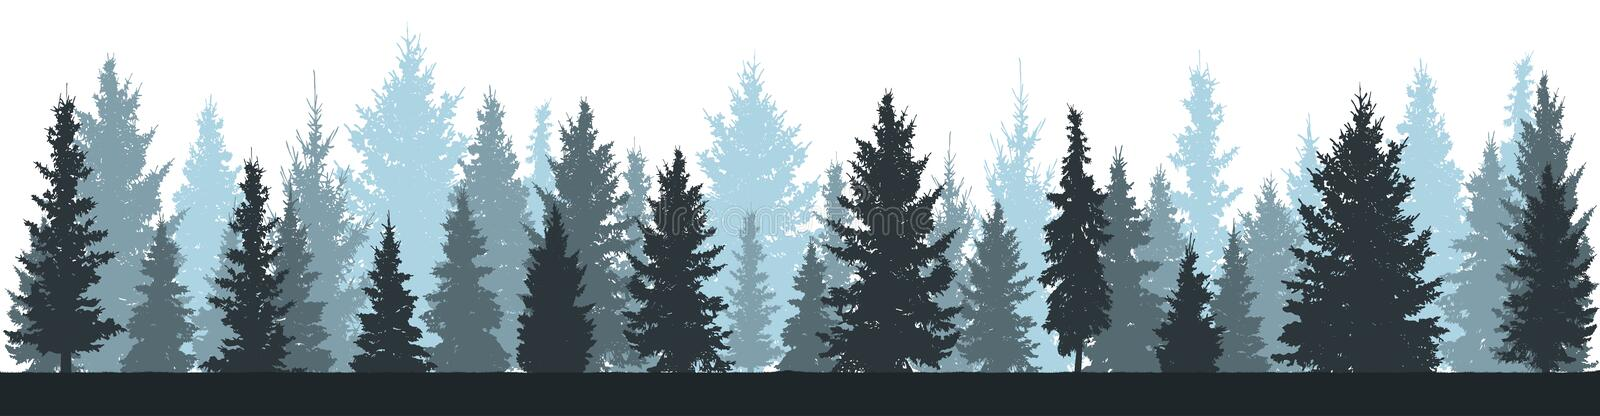 Winter forest fir trees, spruce silhouette on white background. Vector illustration royalty free illustration